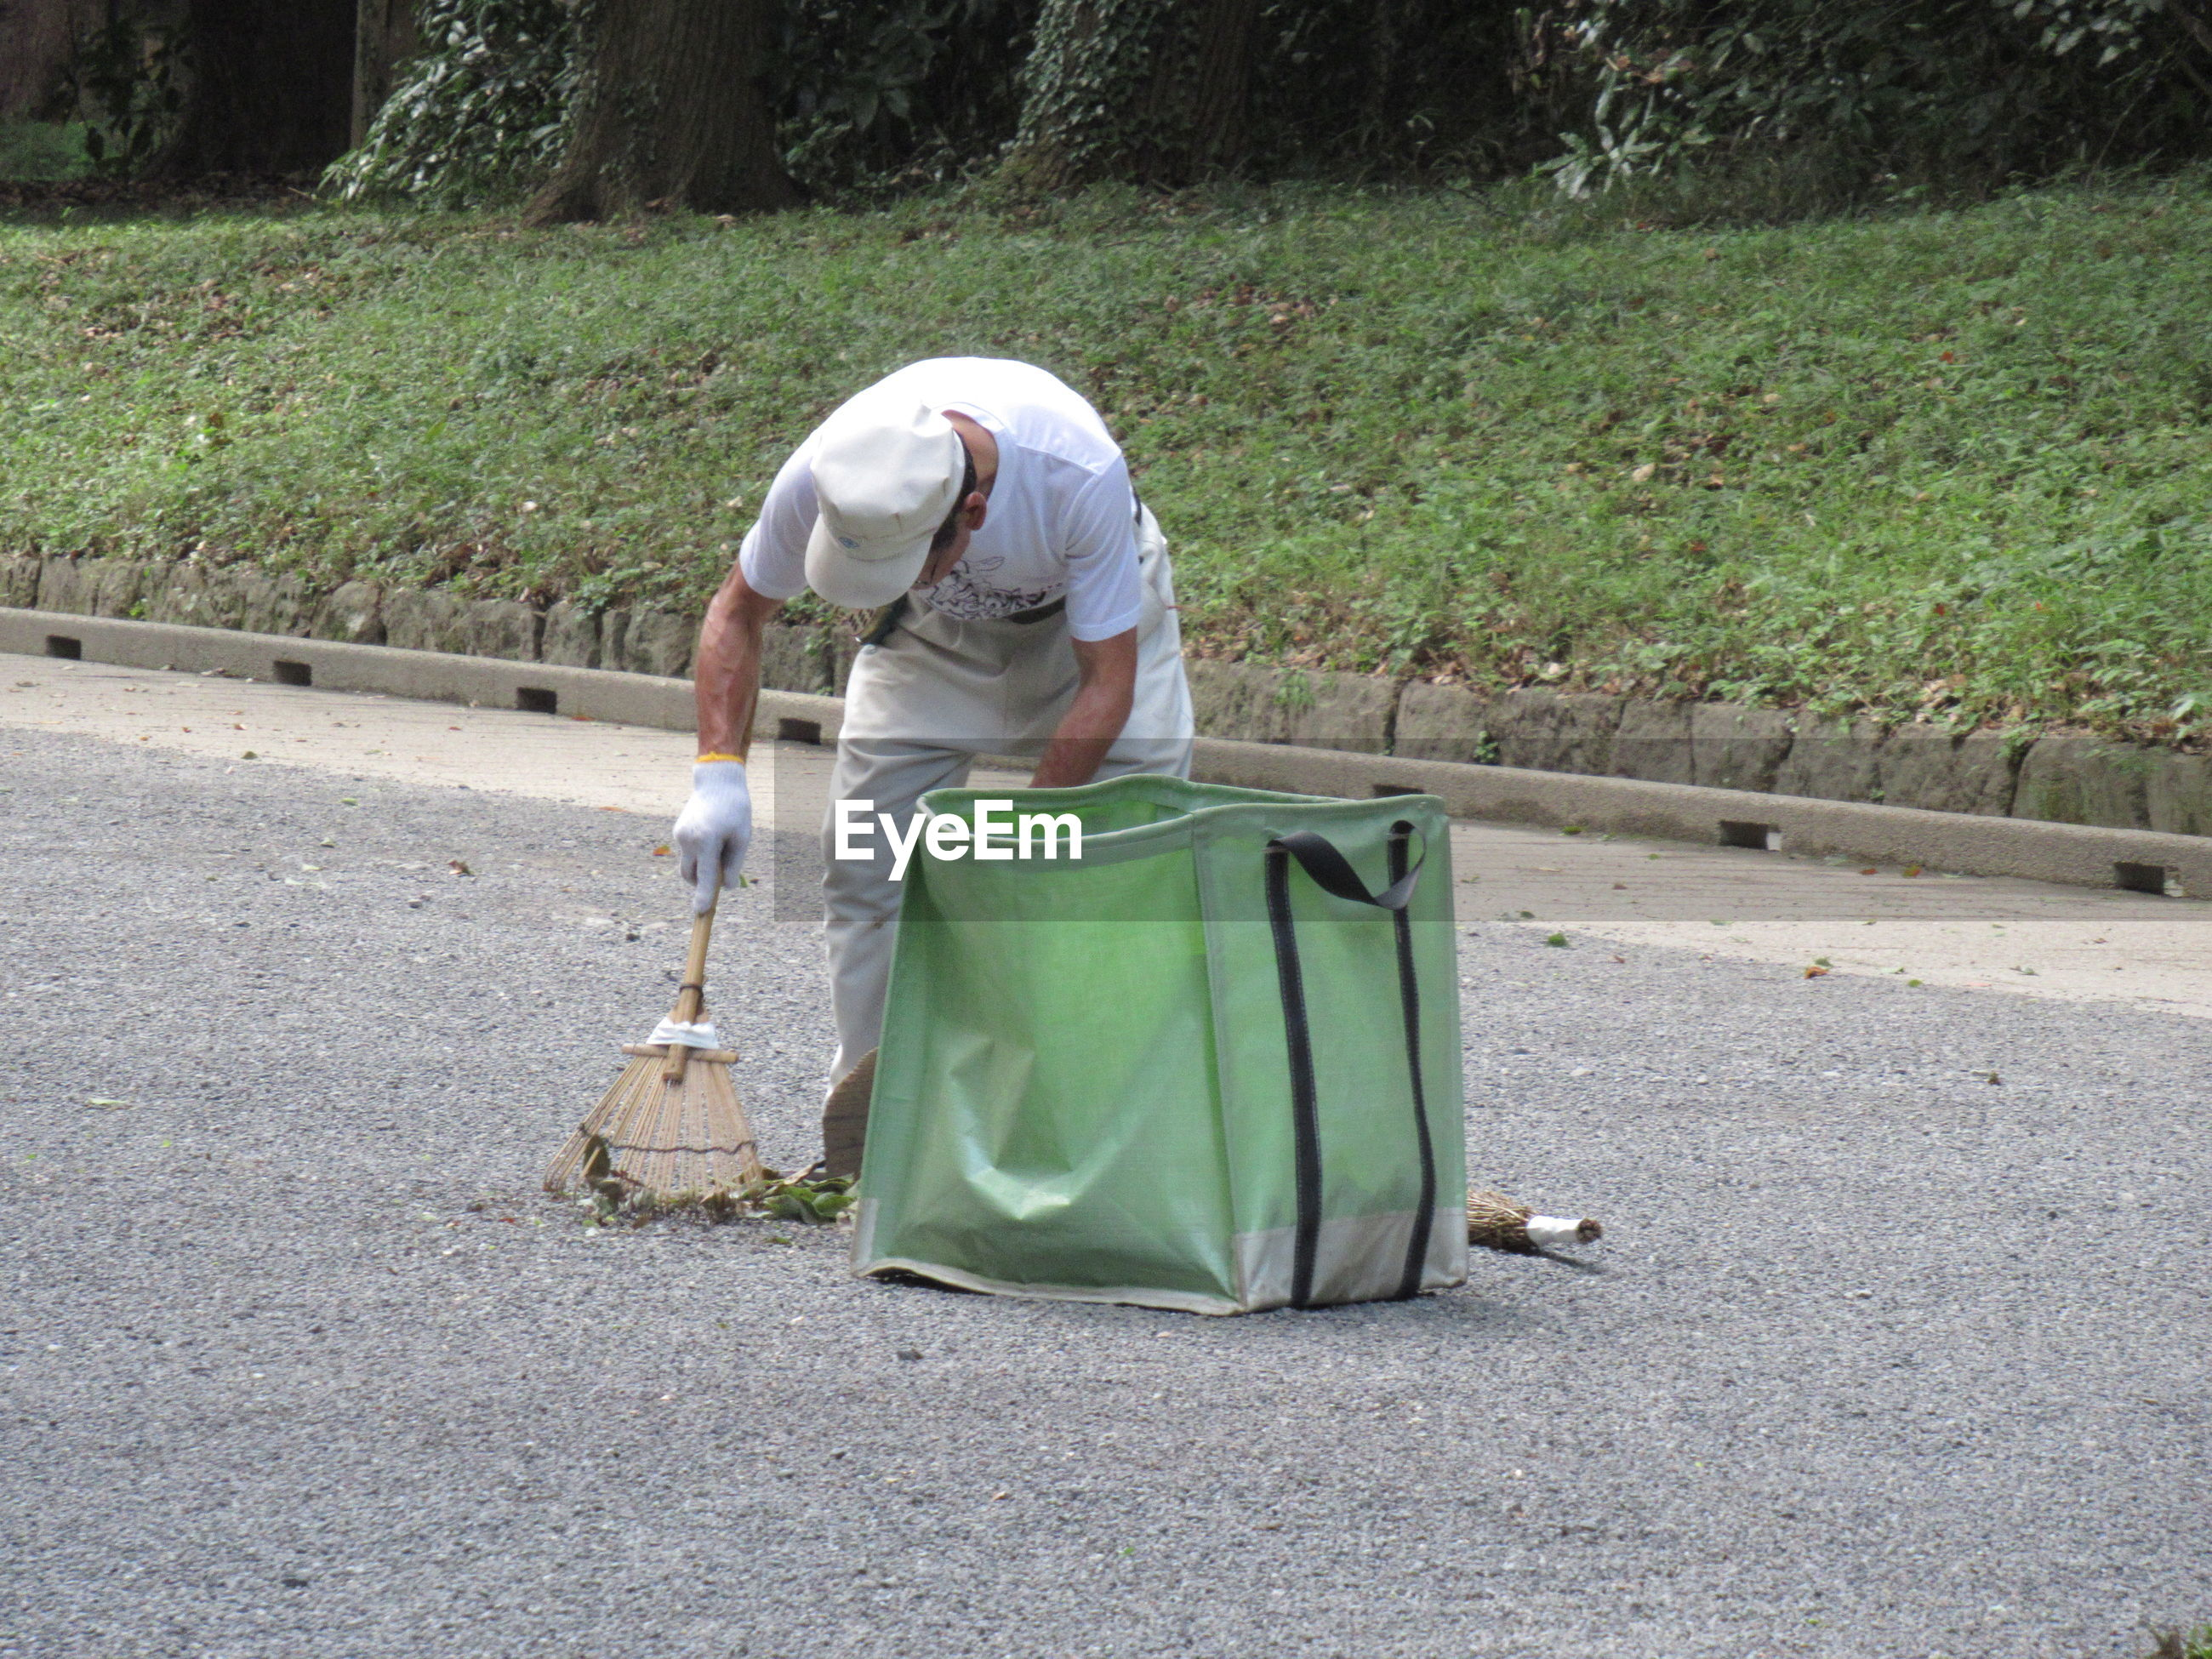 MAN WORKING ON GARBAGE CAN